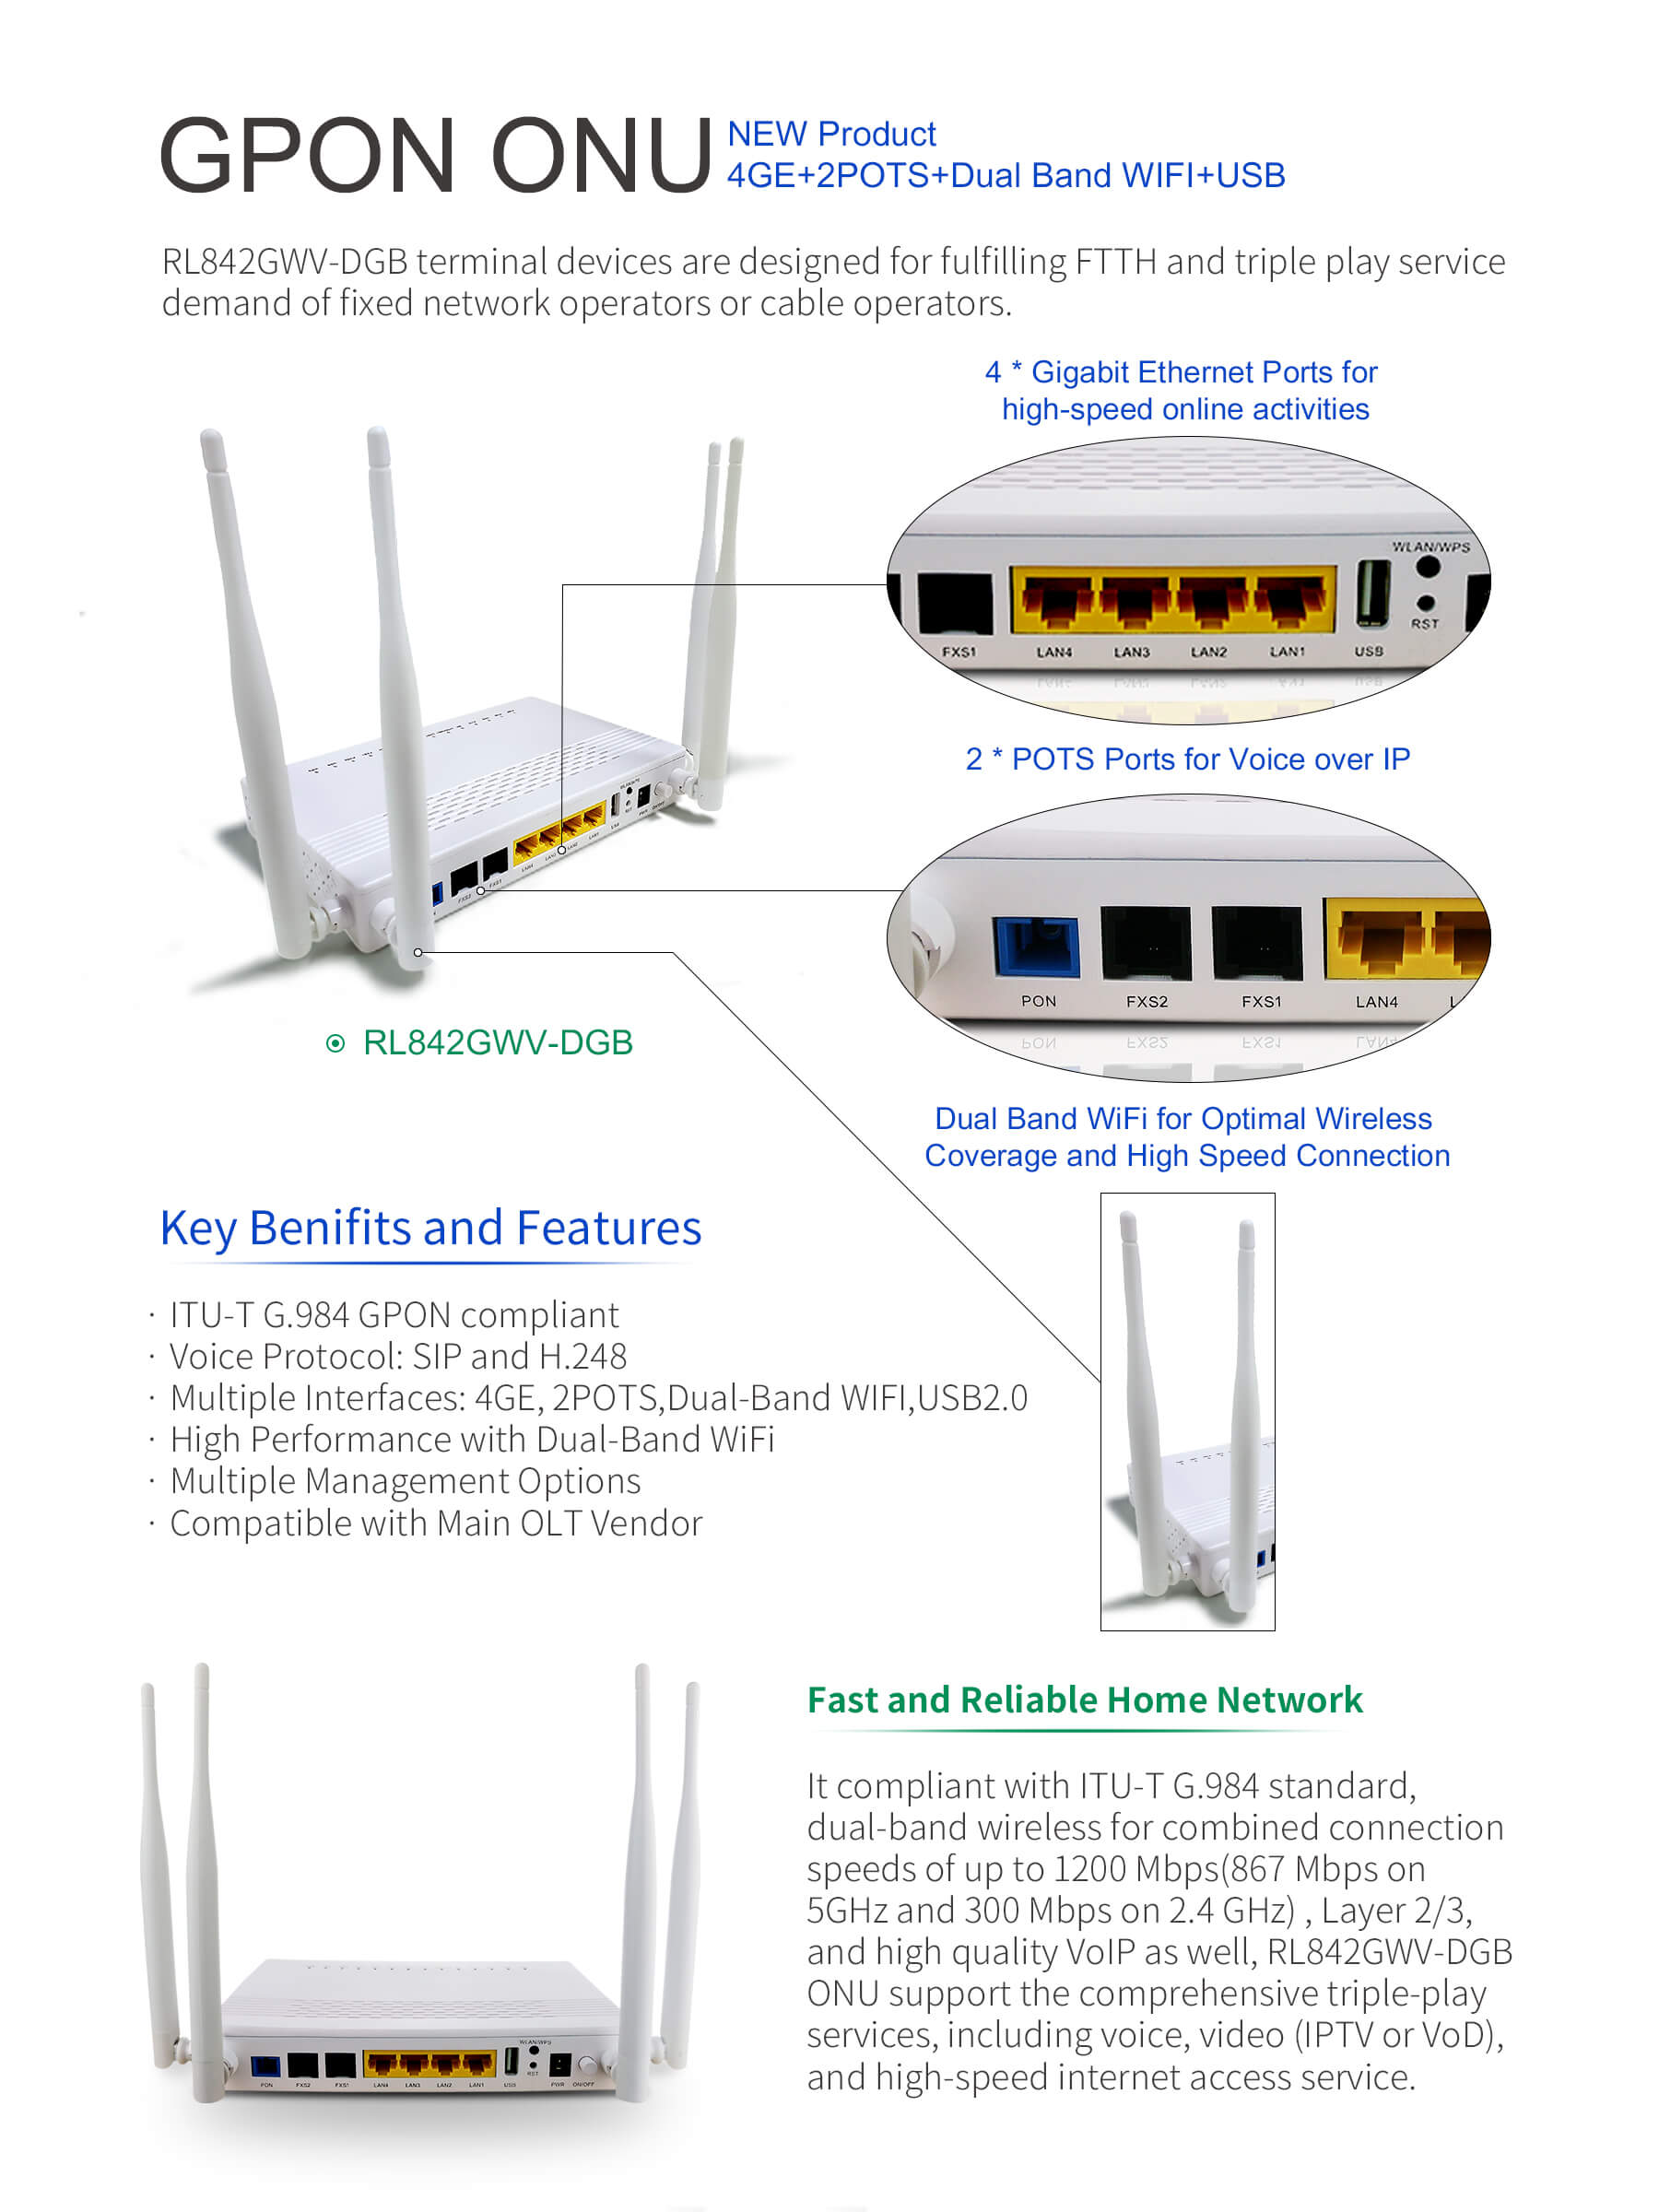 RicherLink Launches RL842GWV-DGB Router Based on GPON Technology